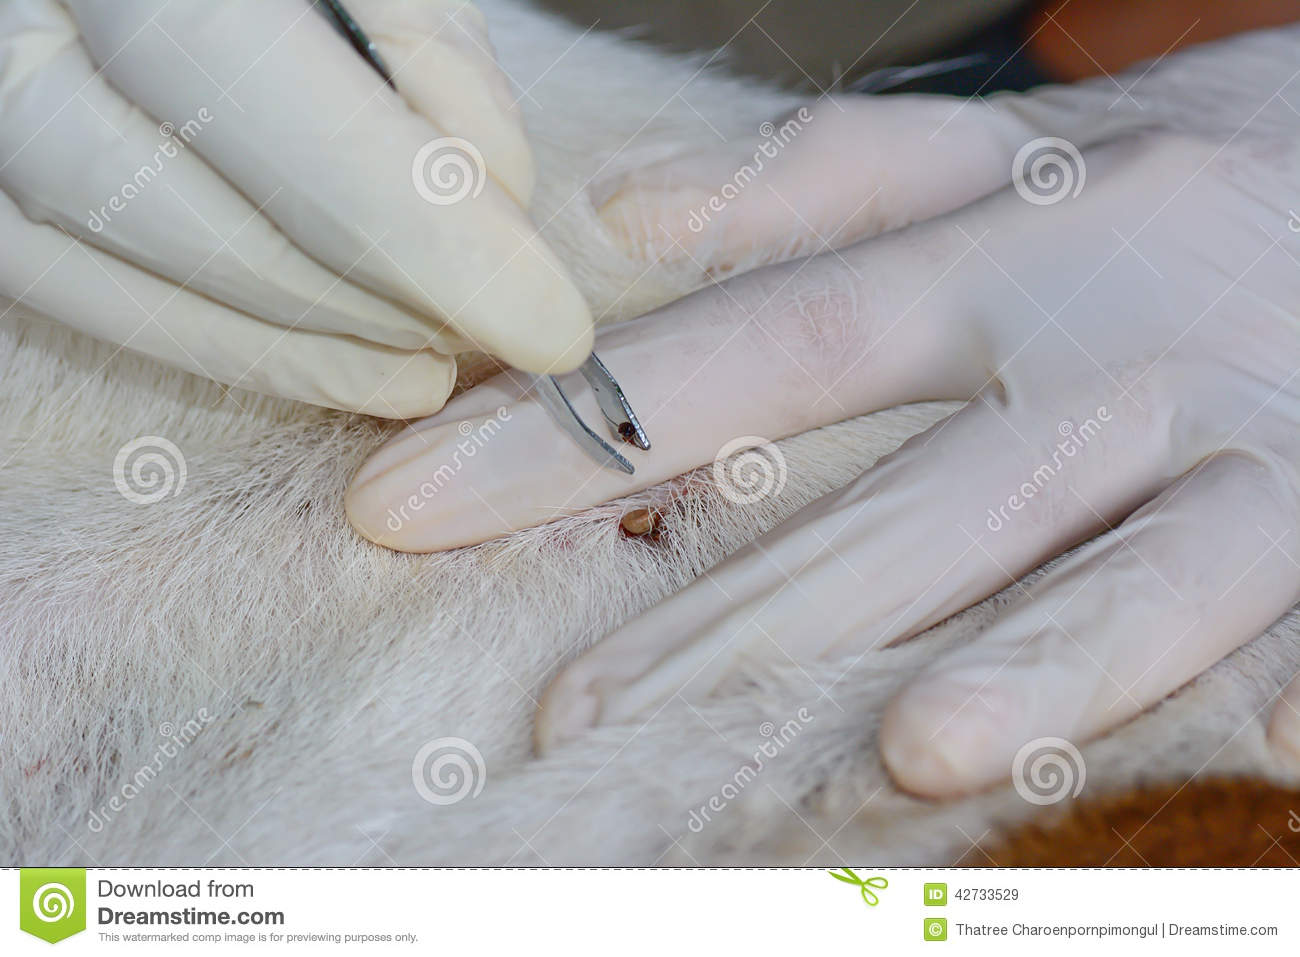 Human hands use silver pliers to remove dog adult tick fro